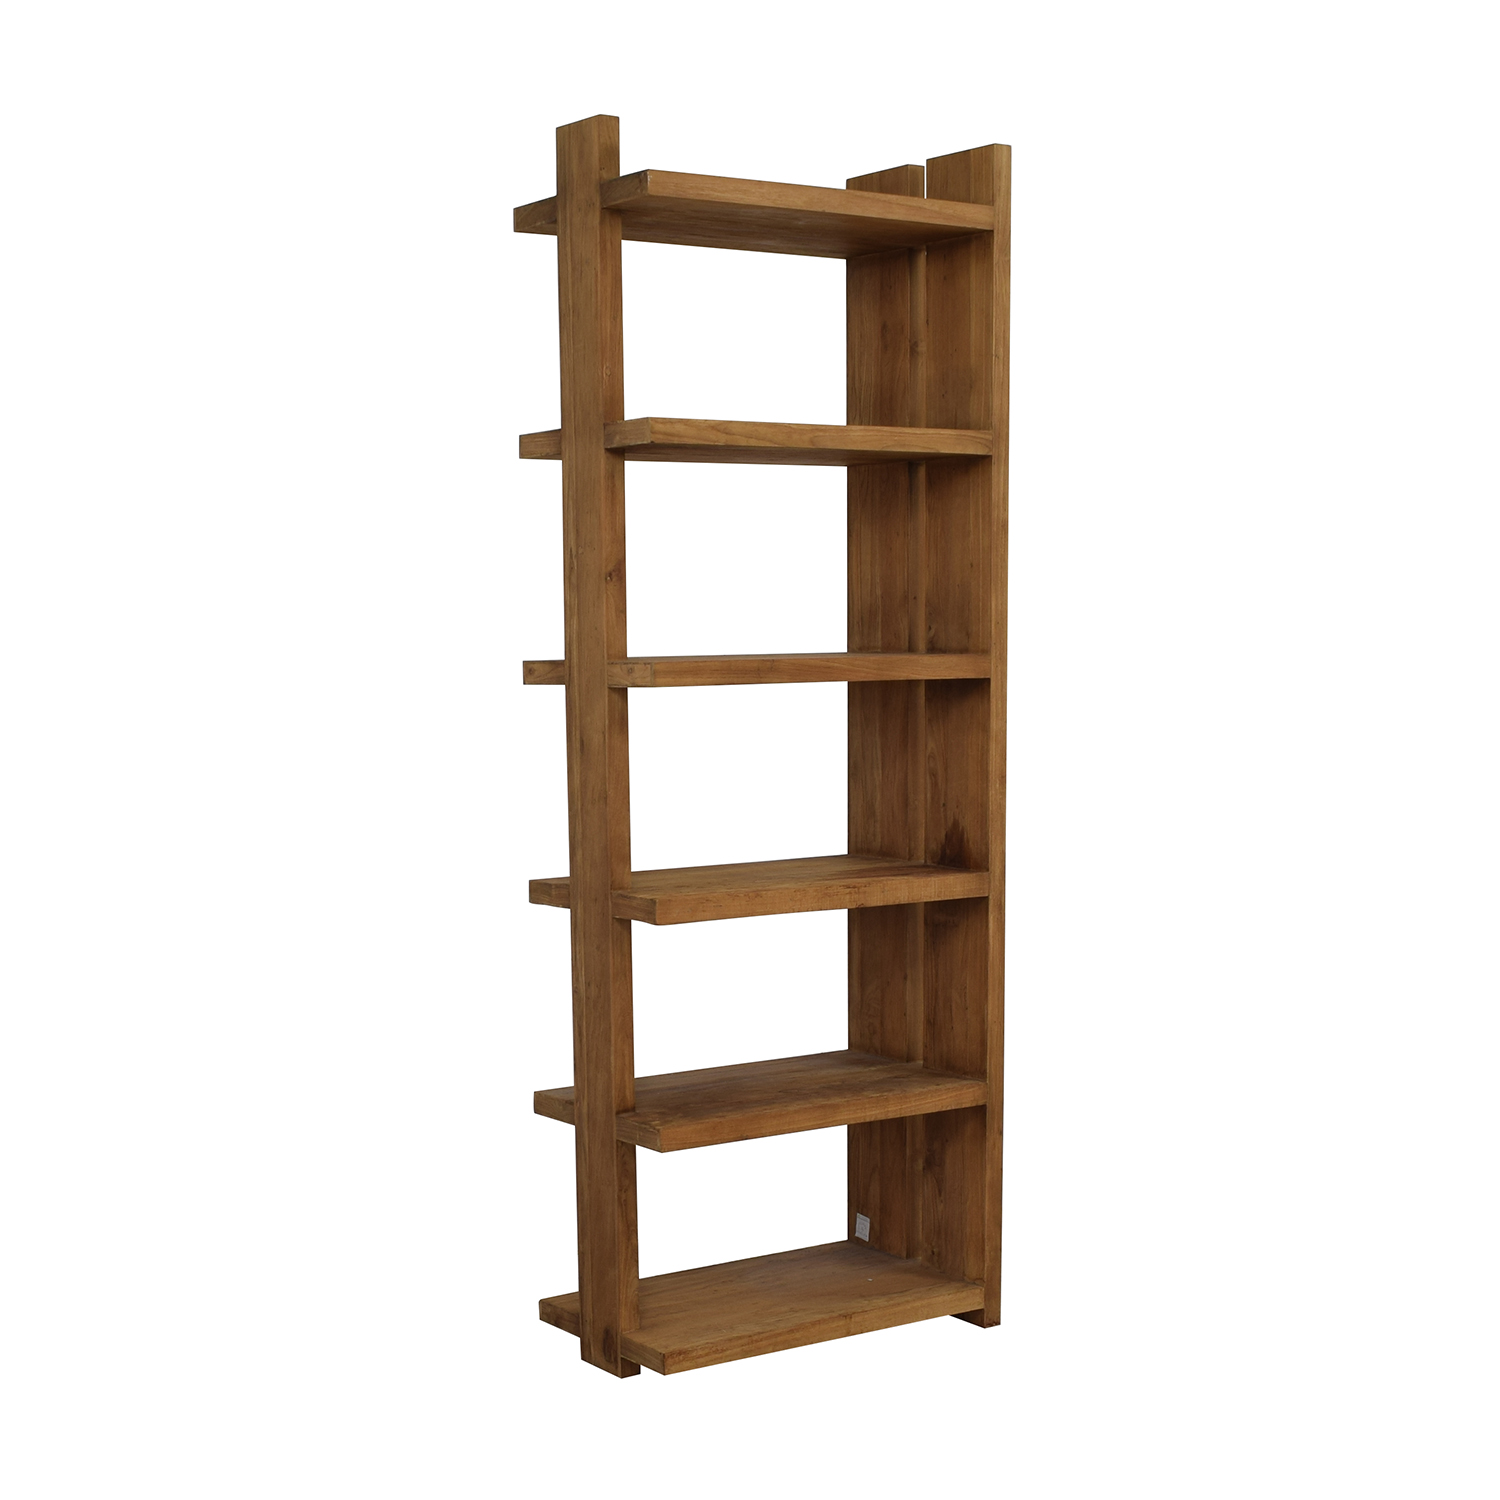 ABC Carpet & Home ABC Carpet & Home Harmony Etagere Bookcases Bookcases & Shelving